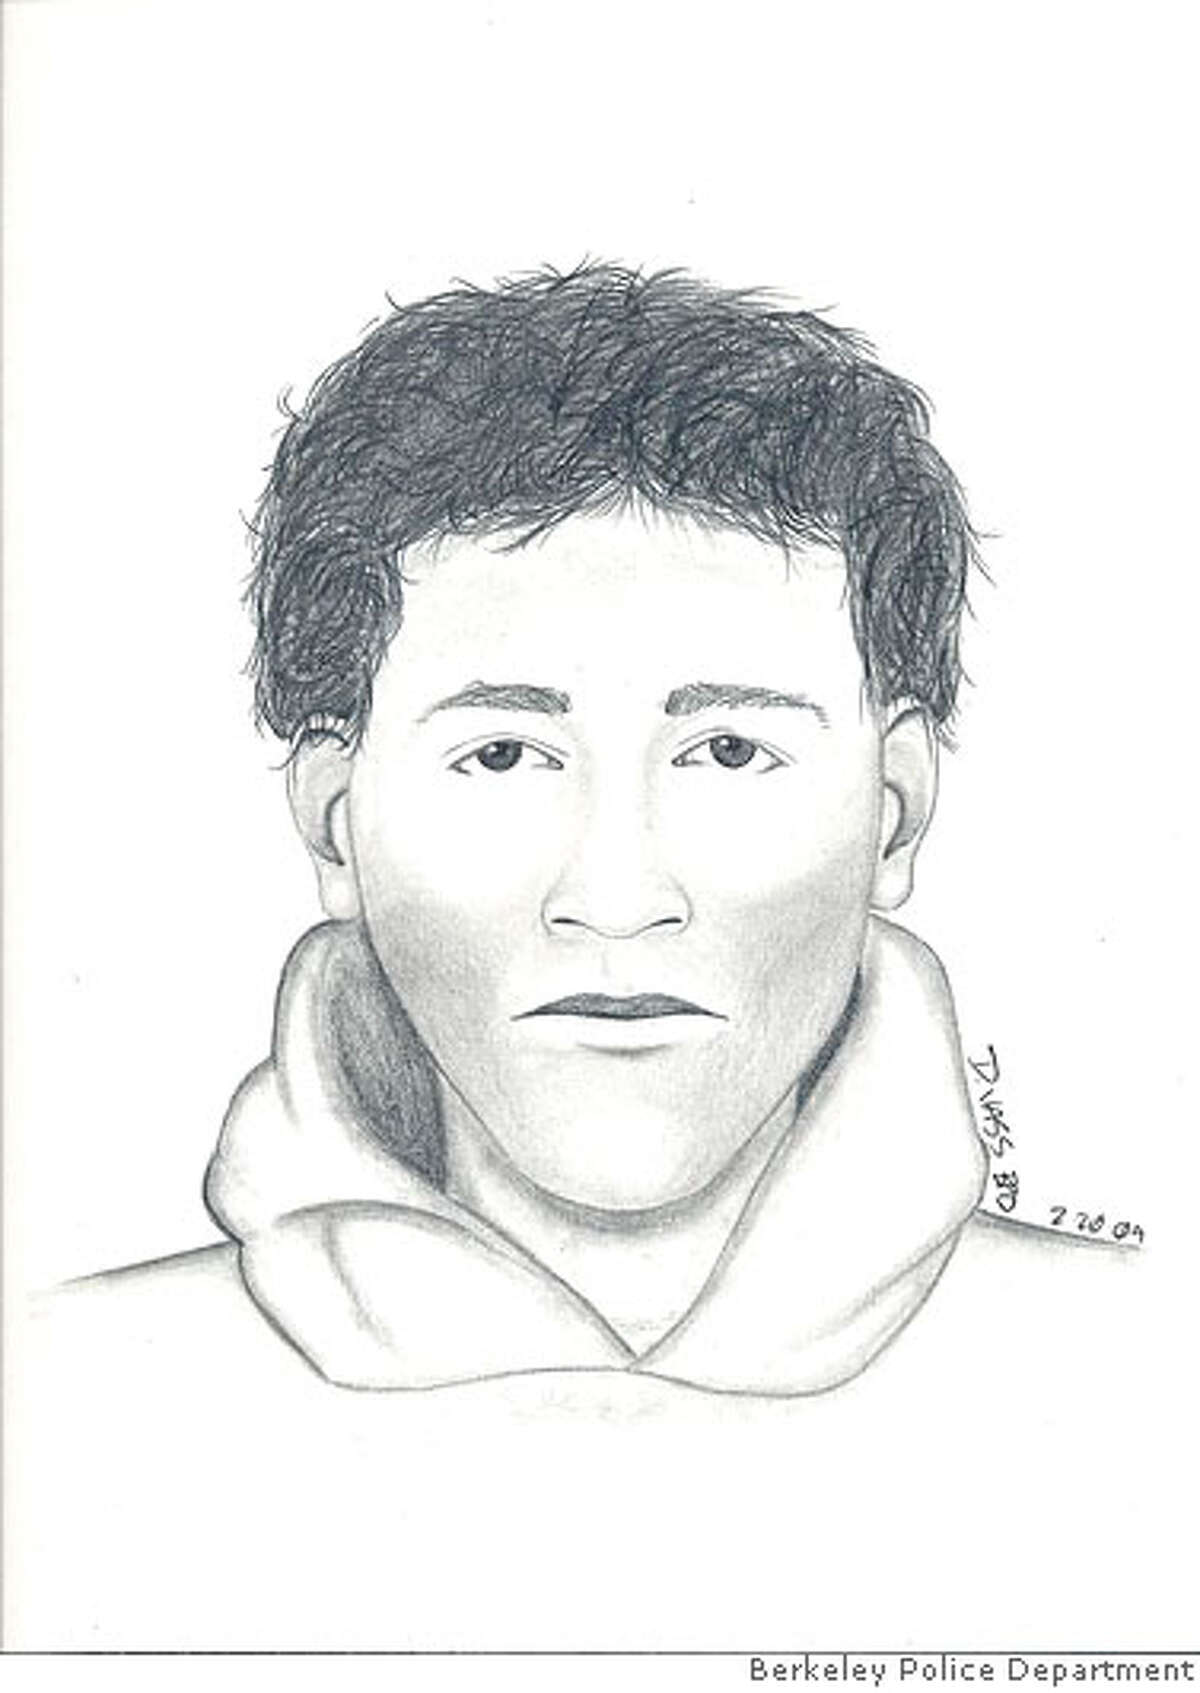 The suspect is described as: White Male, 20s, 5-10 tall, 160-170 lbs, medium build, Short dark wavy hair